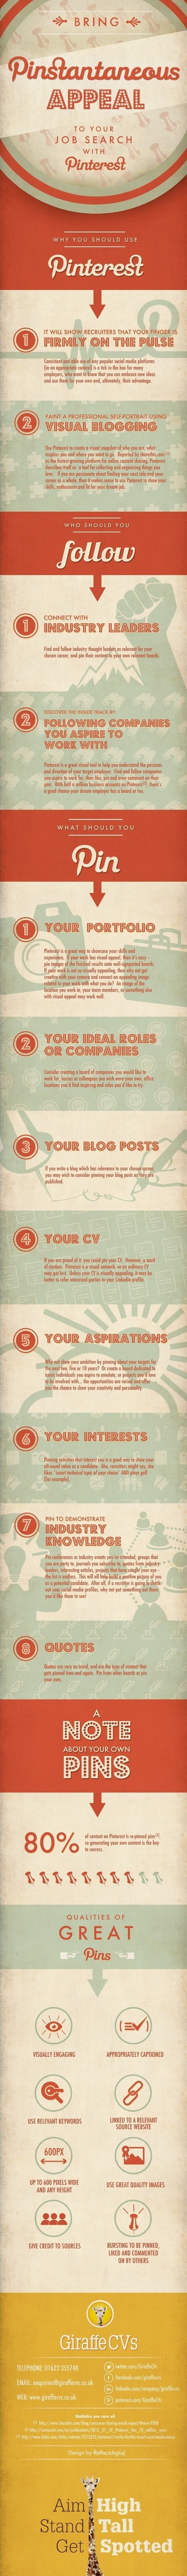 Pinterest infographic | How to use Pinterest for your job search | Social Media Marketing News | Scoop.it